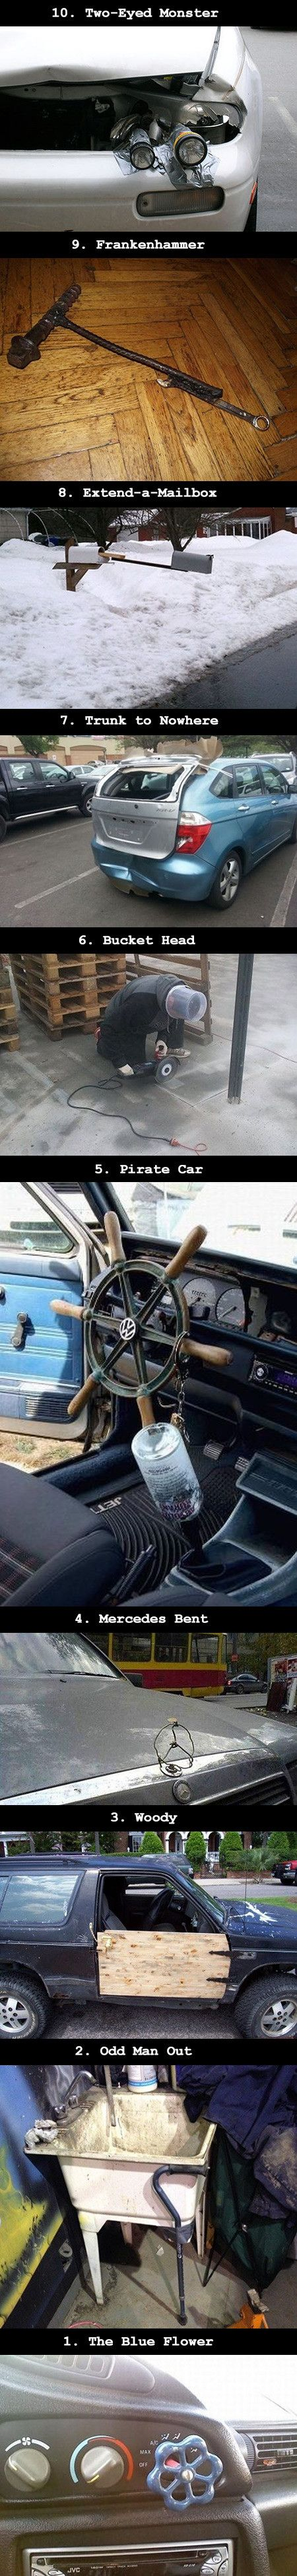 10 Weird and Bizarre Examples of How Not to Fix Things